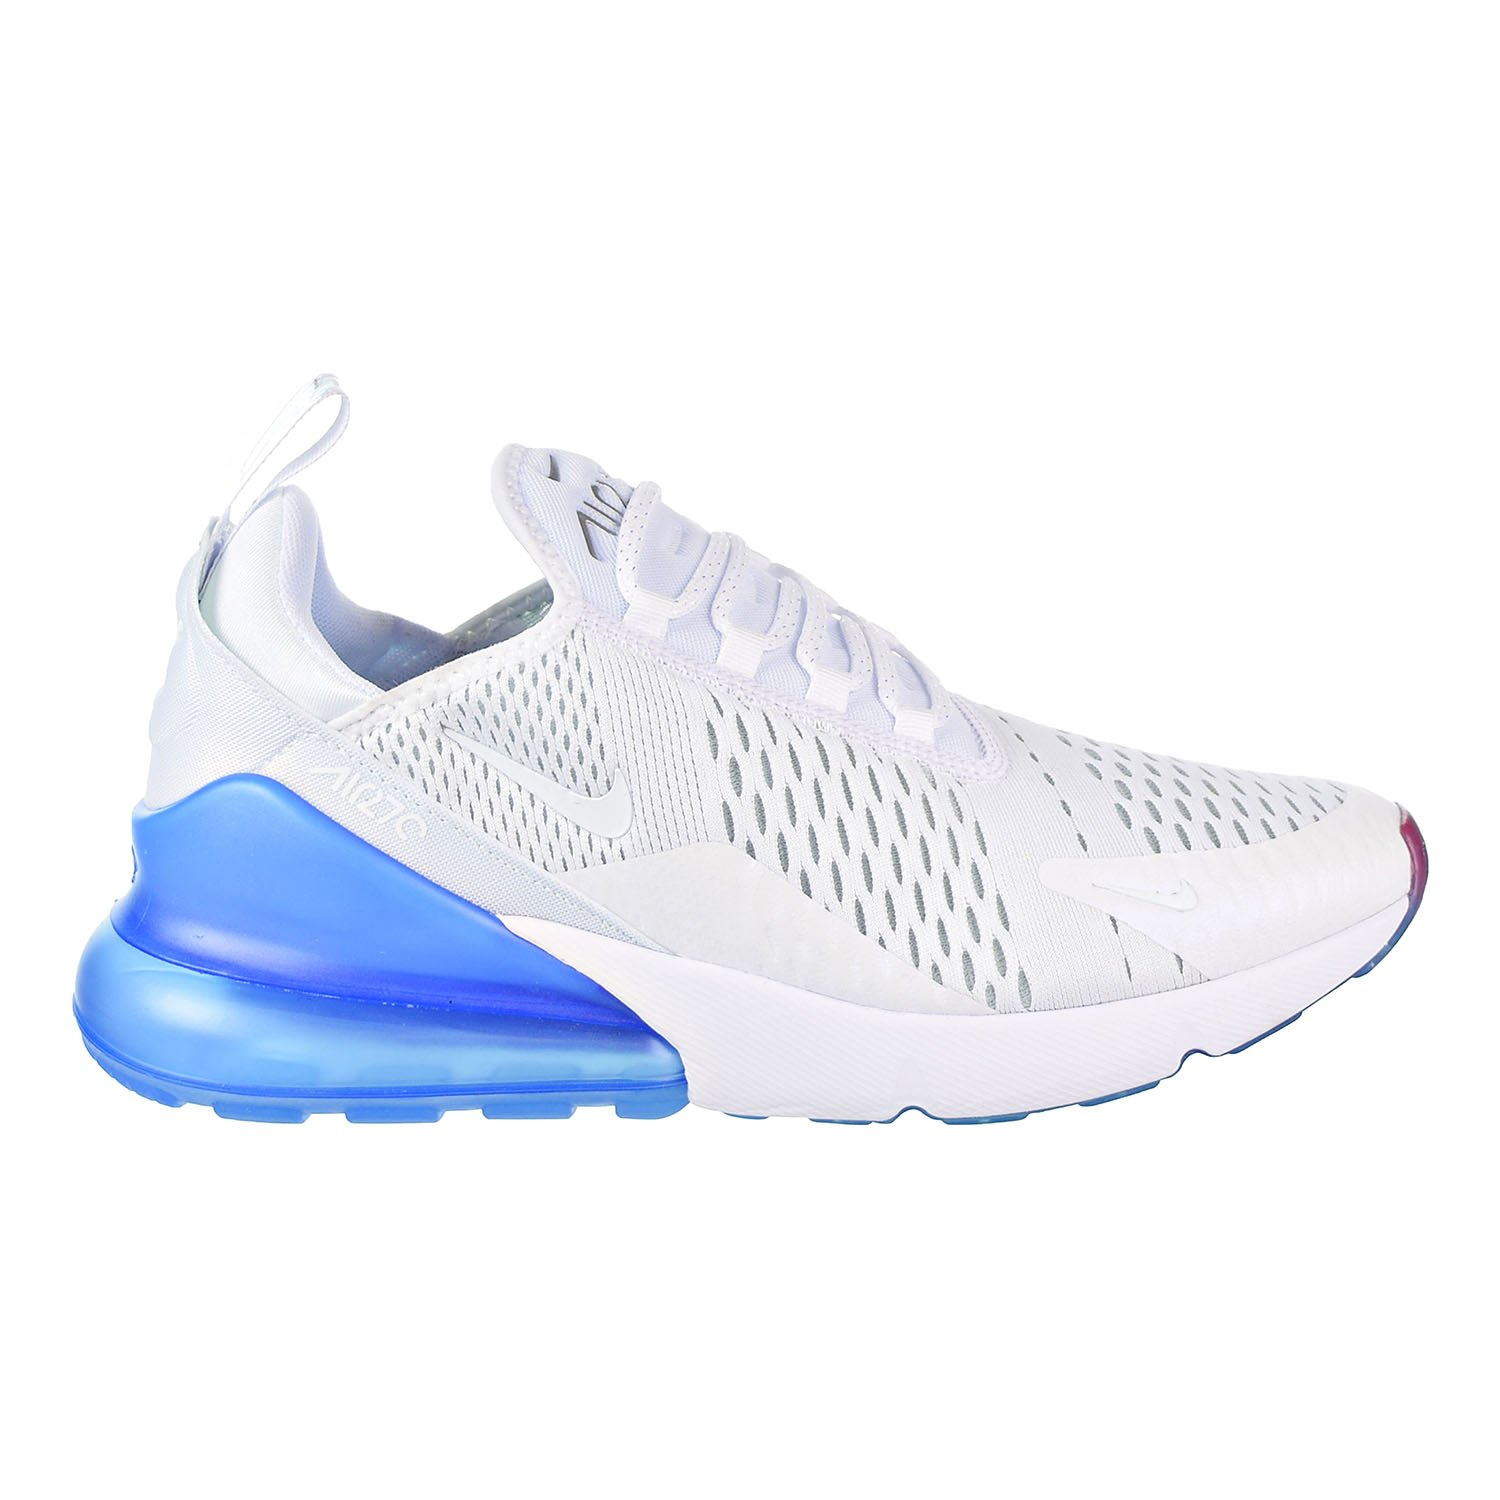 los angeles cce63 879ce Galleon - NIKE Air Max 270 Men s Shoes White Metallic Silver Aq7982-100  (8.5 D(M) US)